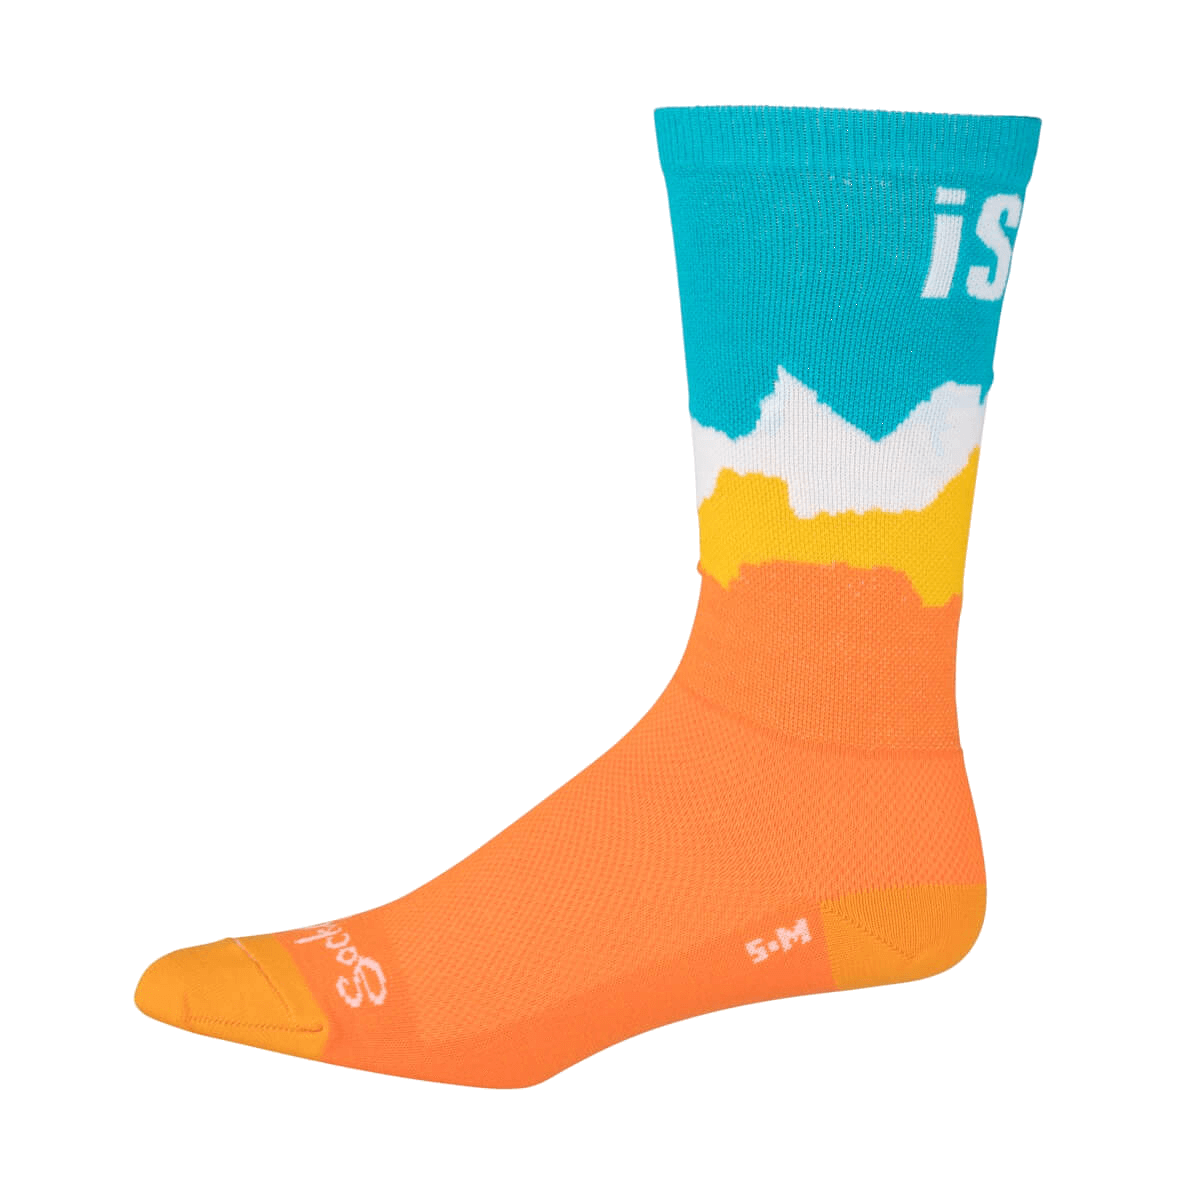 iSSi Cycling Socks | iSSi Pedals